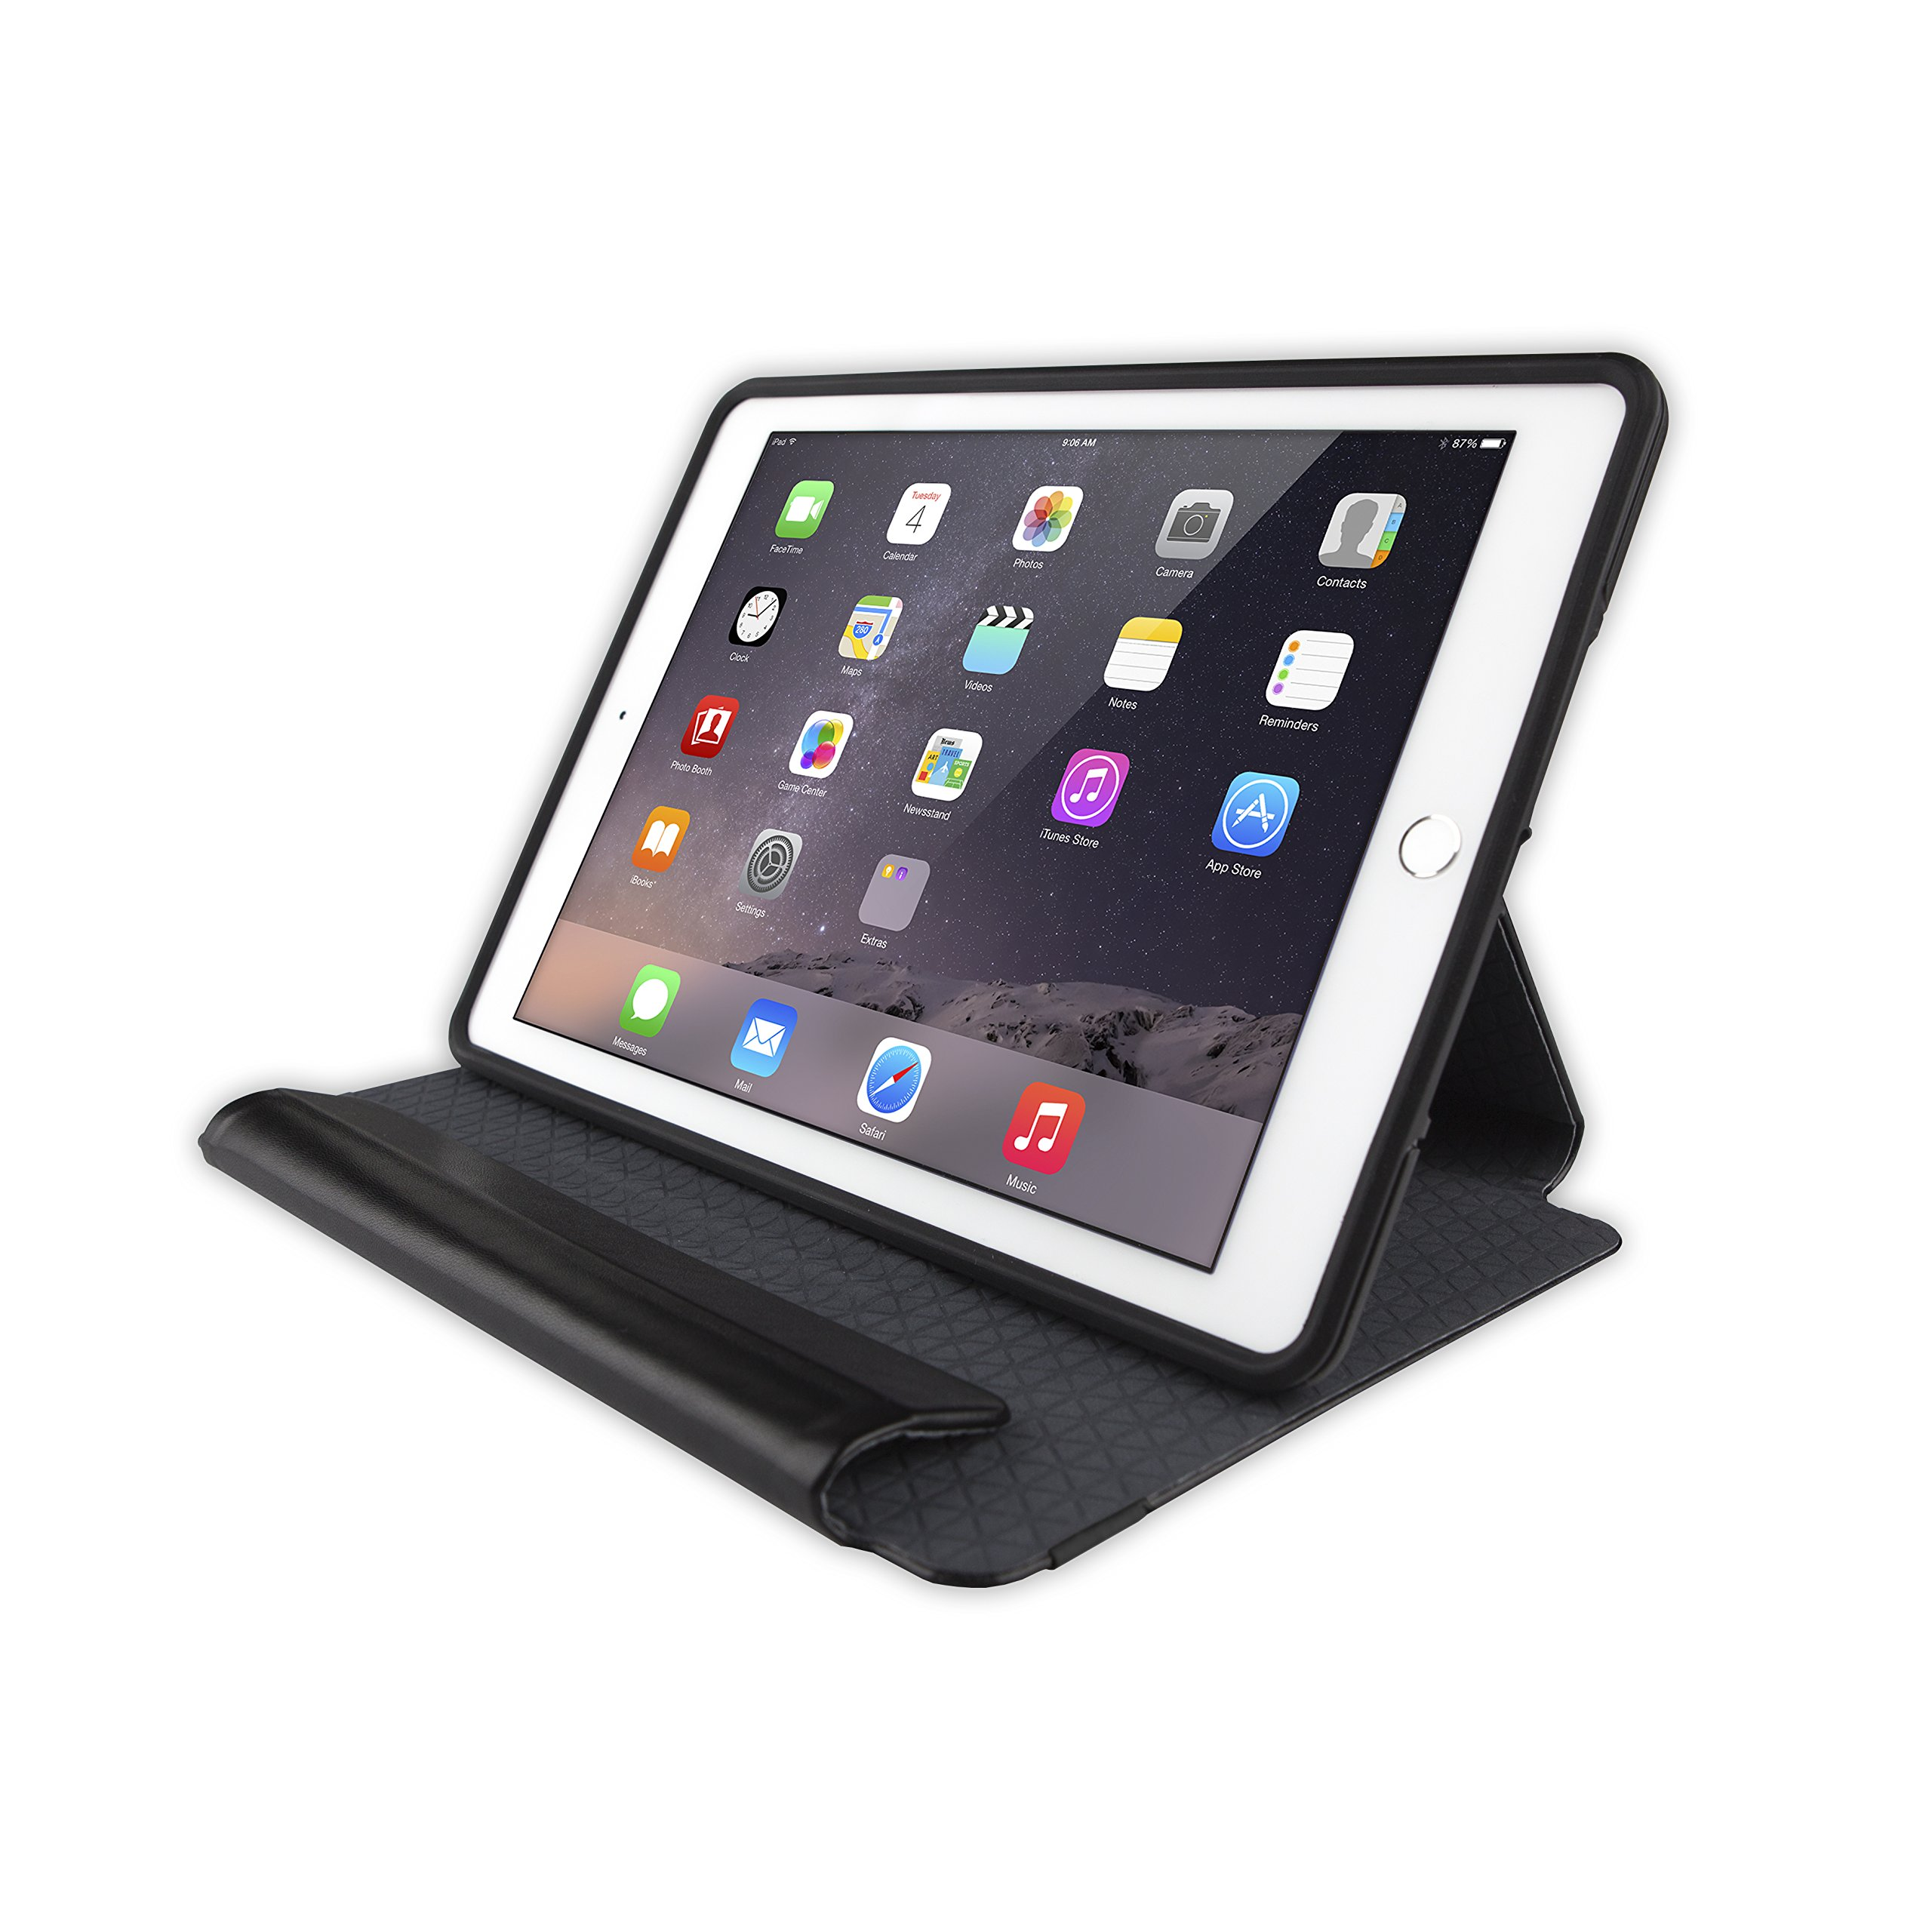 Otterbox Symmetry Series Folio Case for iPad Air 2 - Black